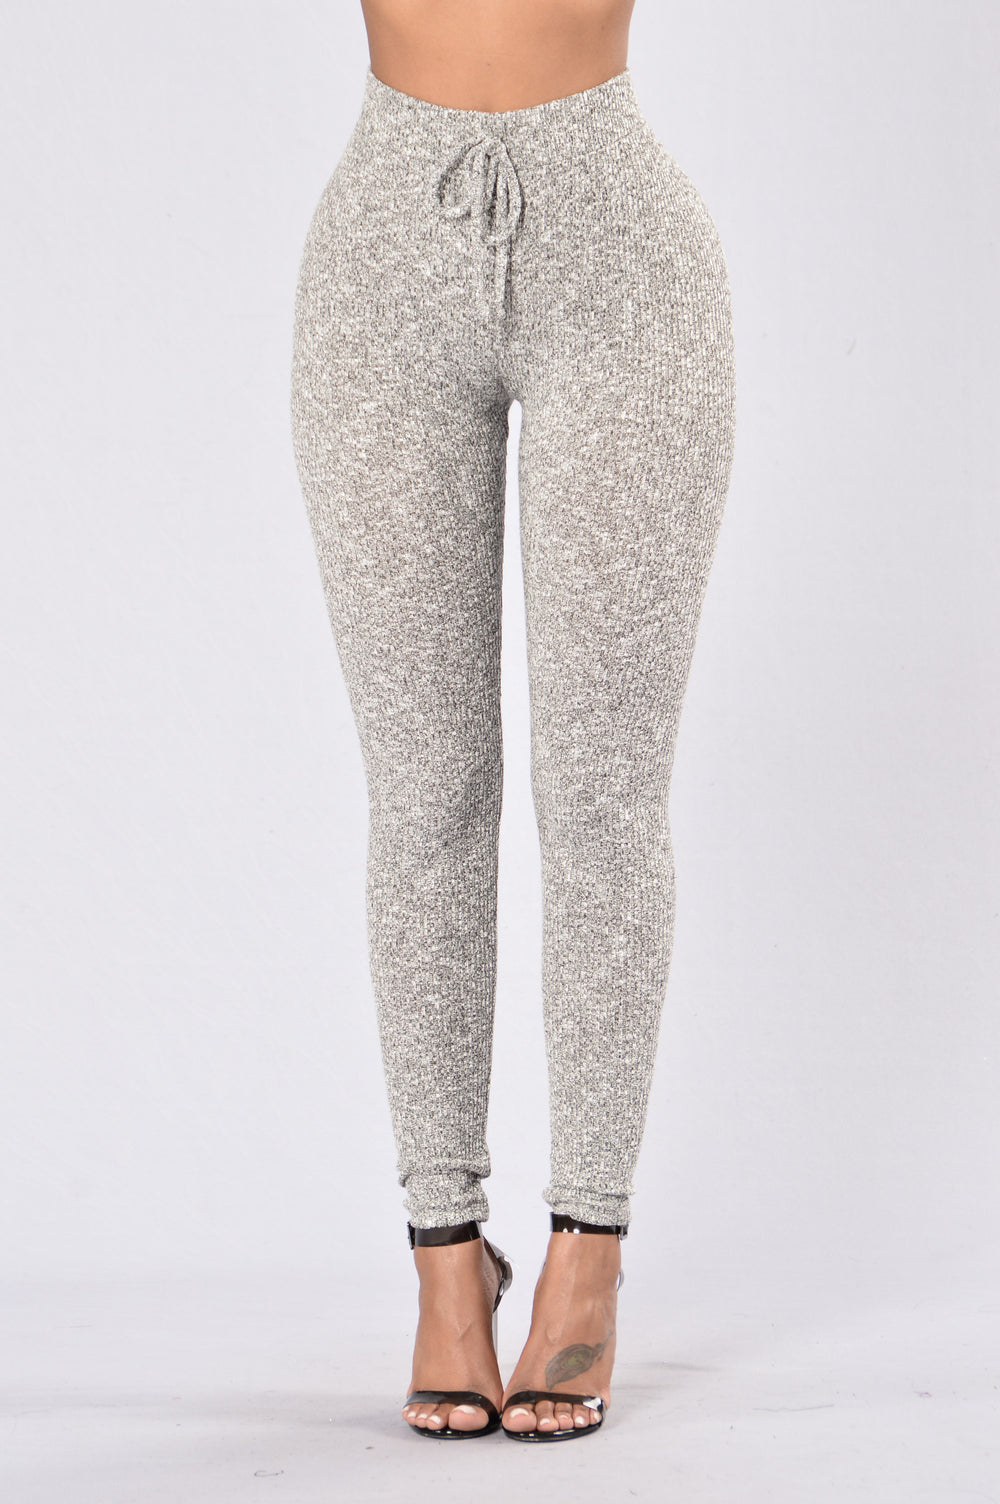 Old Navy has a collection of gray leggings that provides a stylish look and a comfortable fit. Choose from gray leggings in a wide selection of fabulous styles and colors.